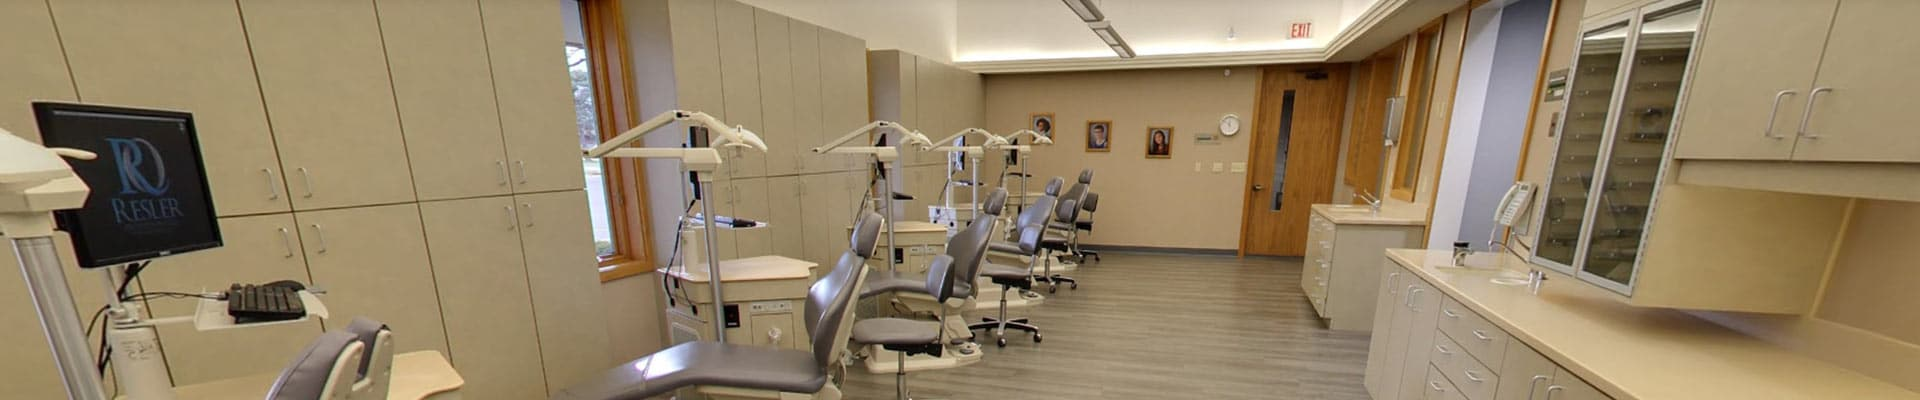 About Us Patient Stations at Resler Orthodontics in Saginaw and Clio MI